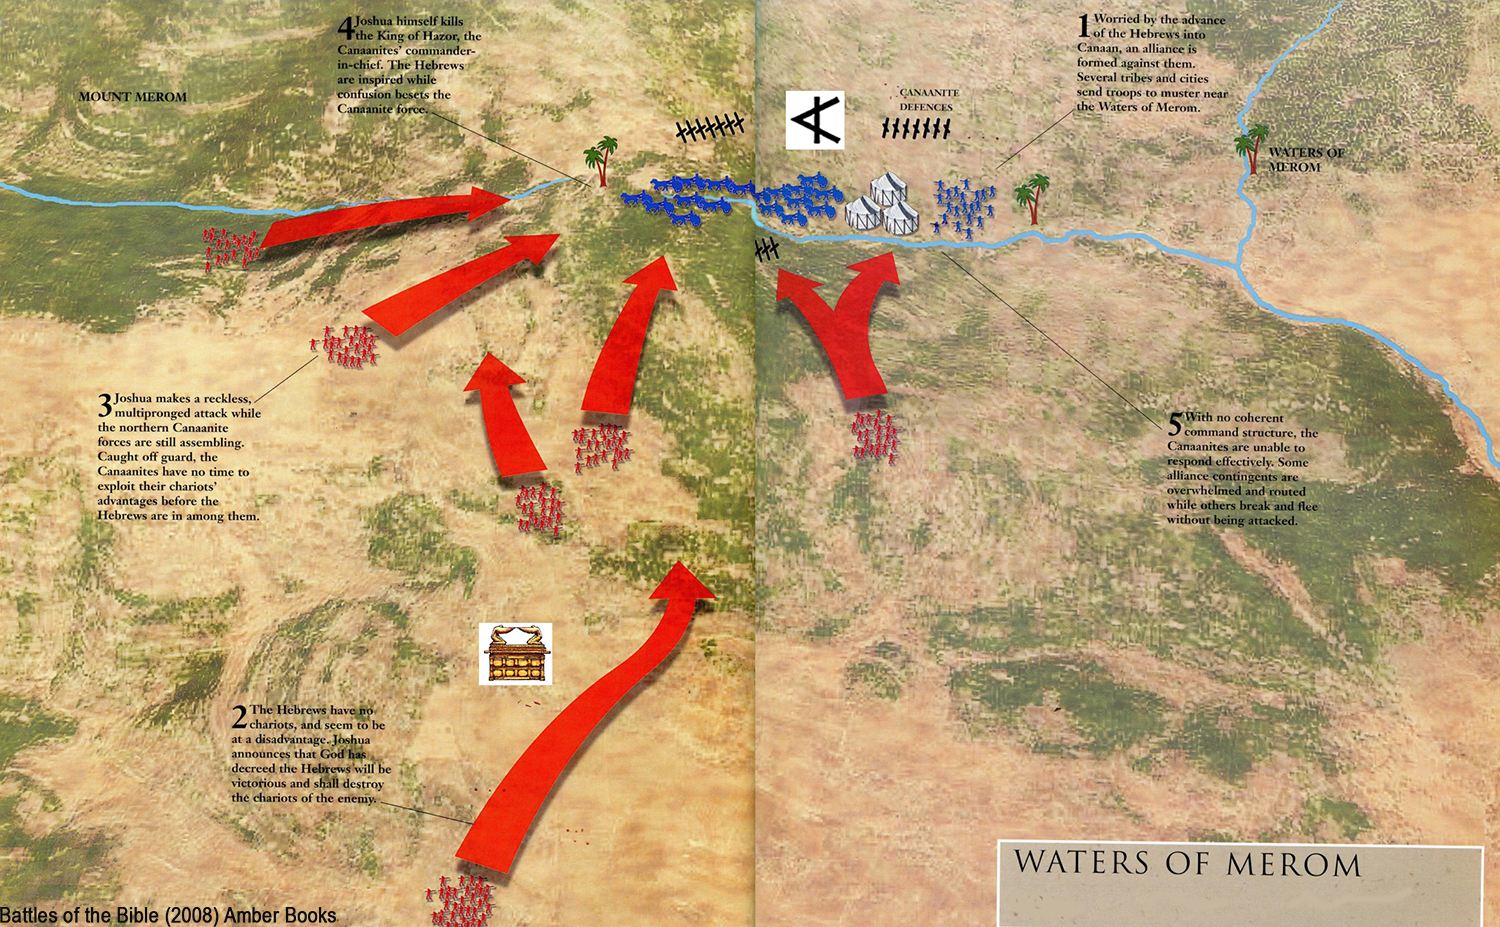 military history, ancient war, battle map, battle strategy, military tactics, Battle of Waters of Merom, Joshua 11